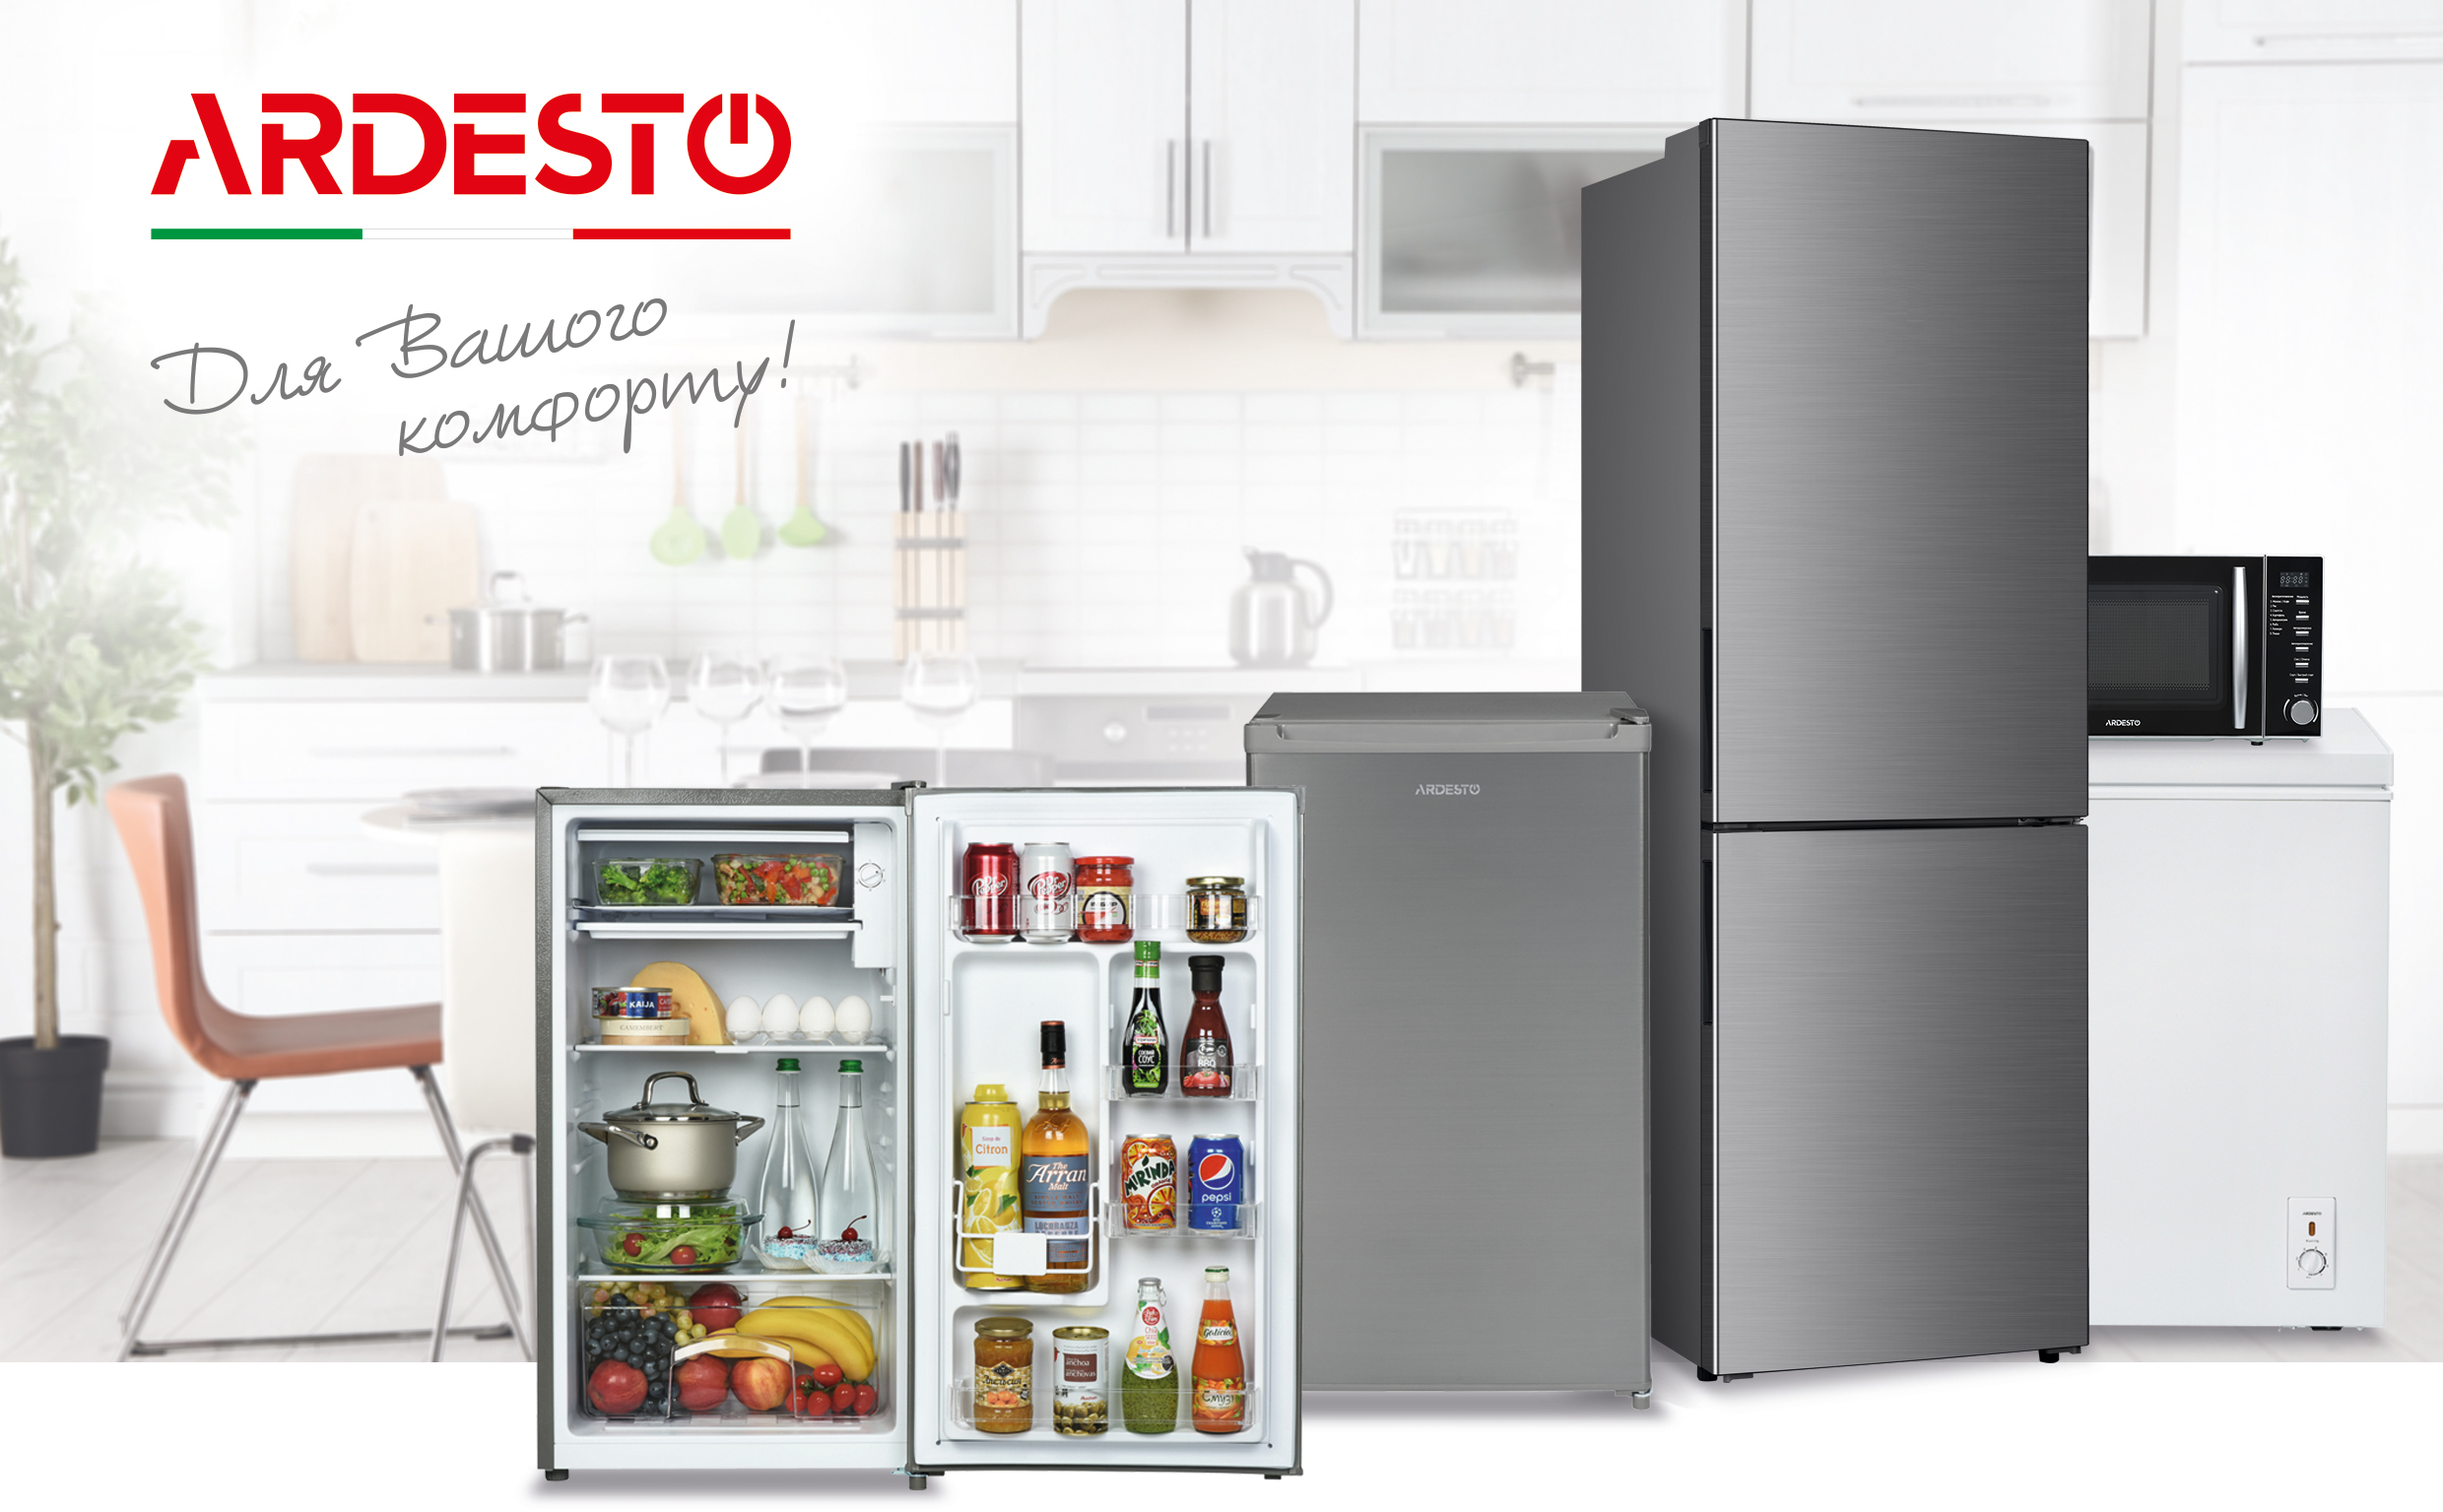 Ardesto refrigerators – a great addition to any interior